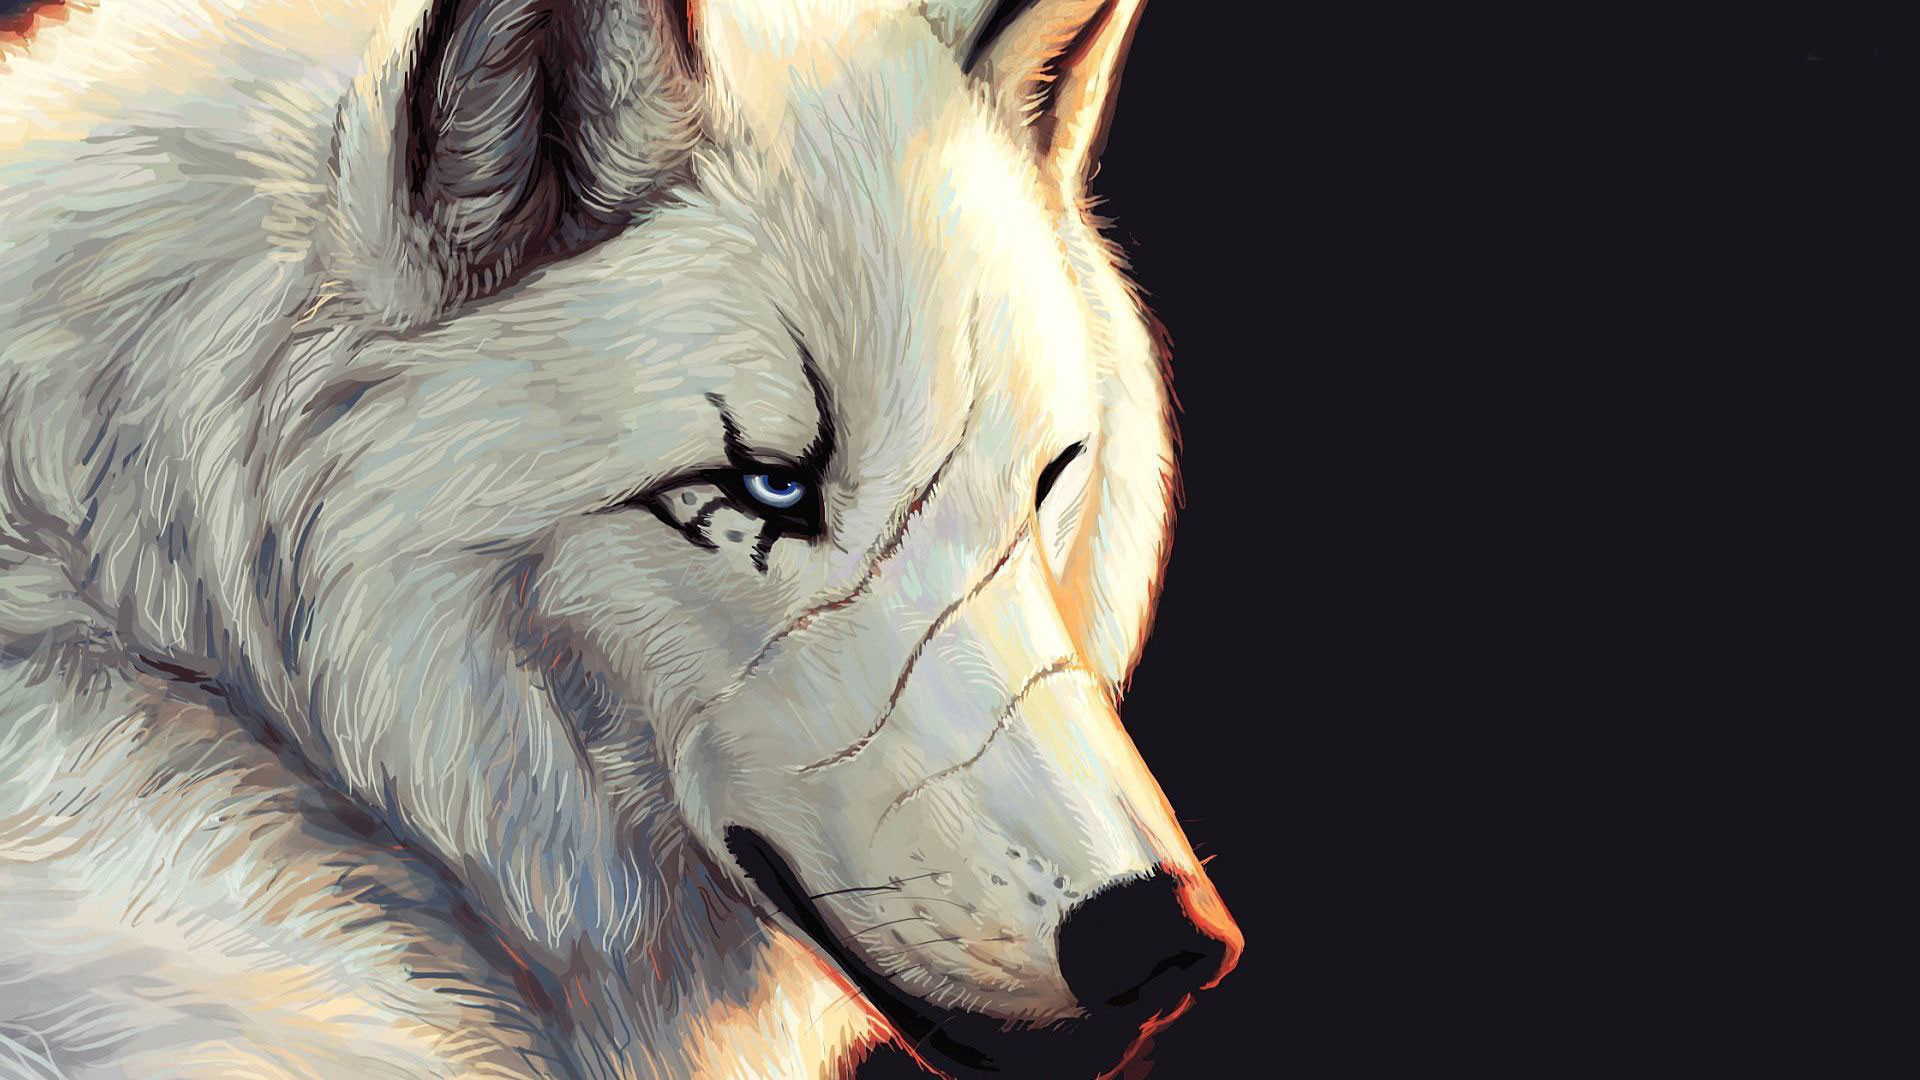 hd pics photos beautiful 3d animated wolf painting attractive hd quality  desktop background wallpaper